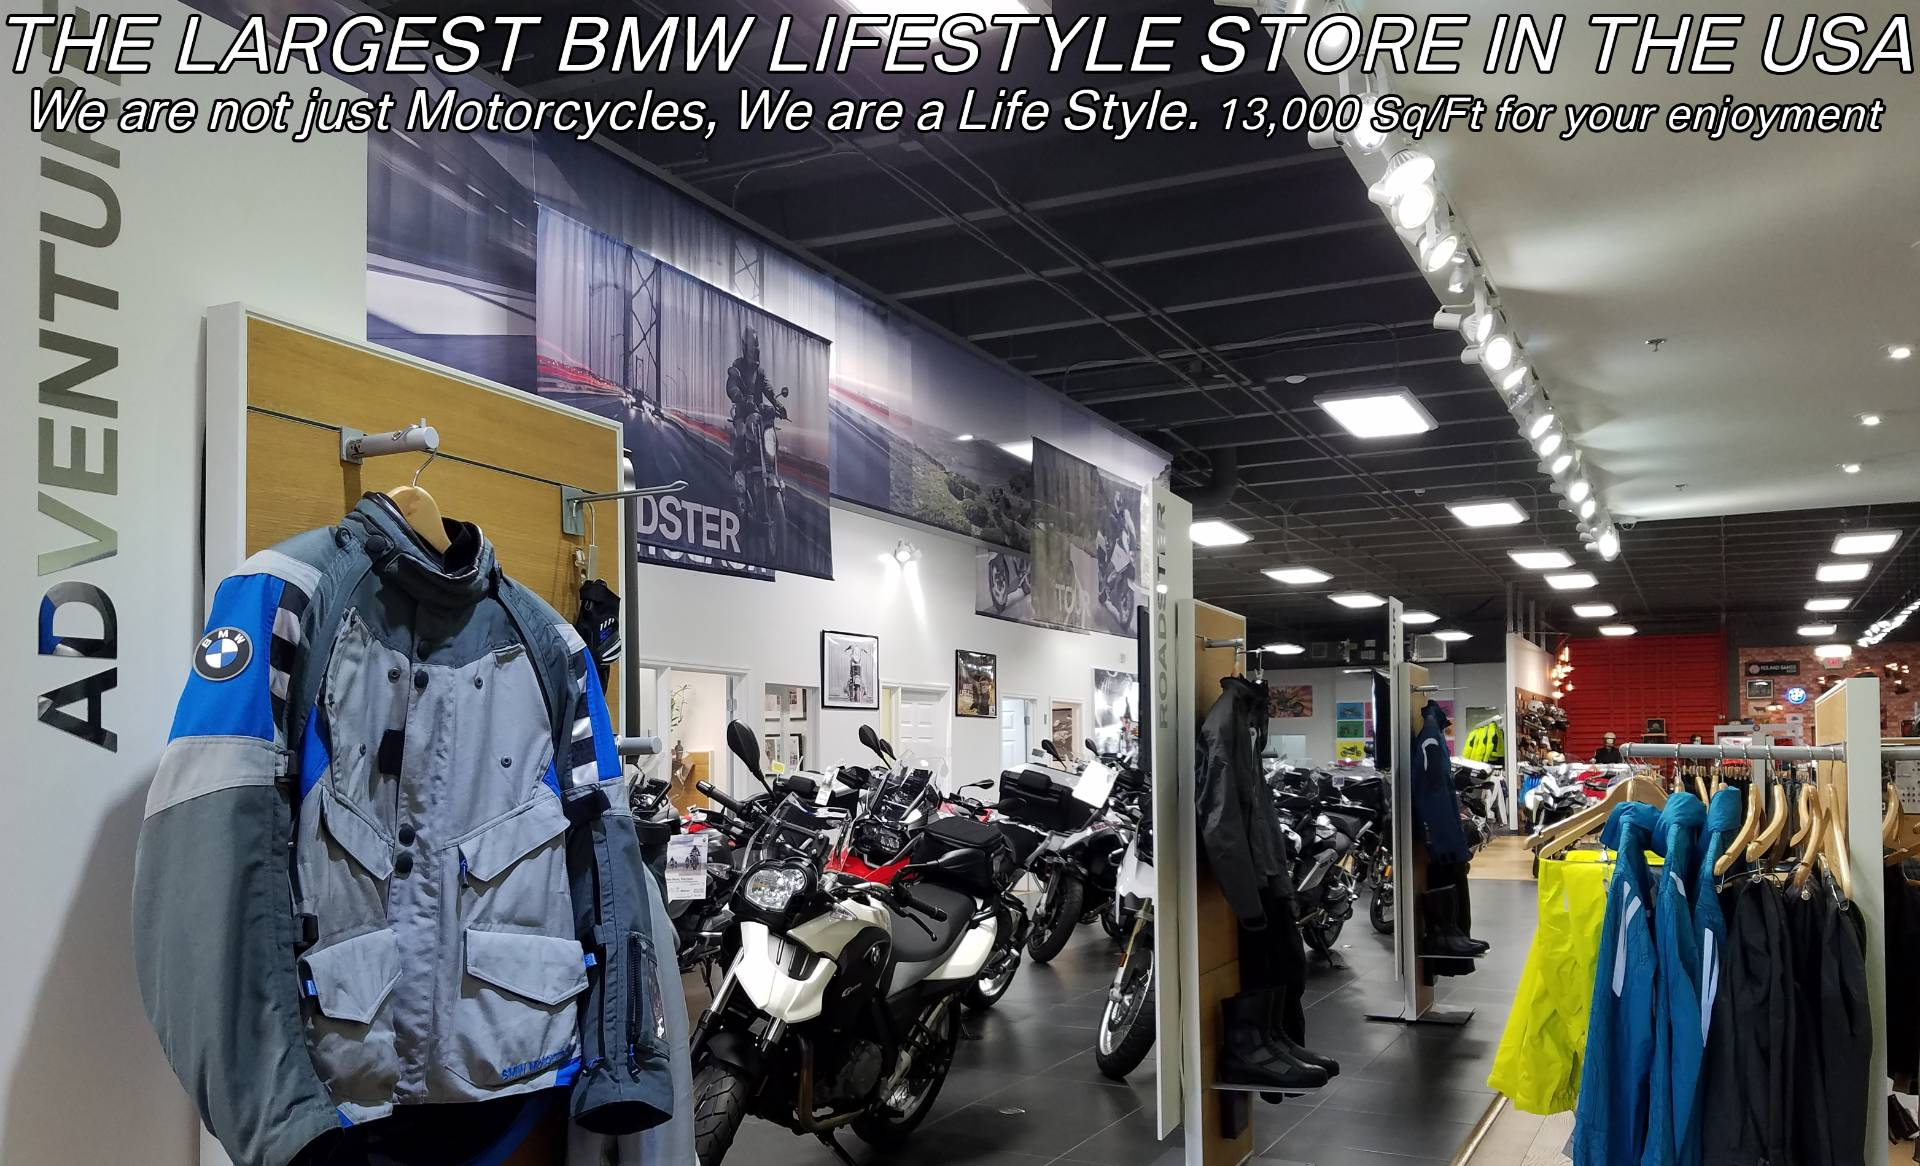 New 2019 BMW R NineT Scrambler for sale, BMW for sale, BMW Motorcycle Café Racer, new BMW Scrambler, Srambler, BMW. BMW Motorcycles of Miami, Motorcycles of Miami - Photo 54